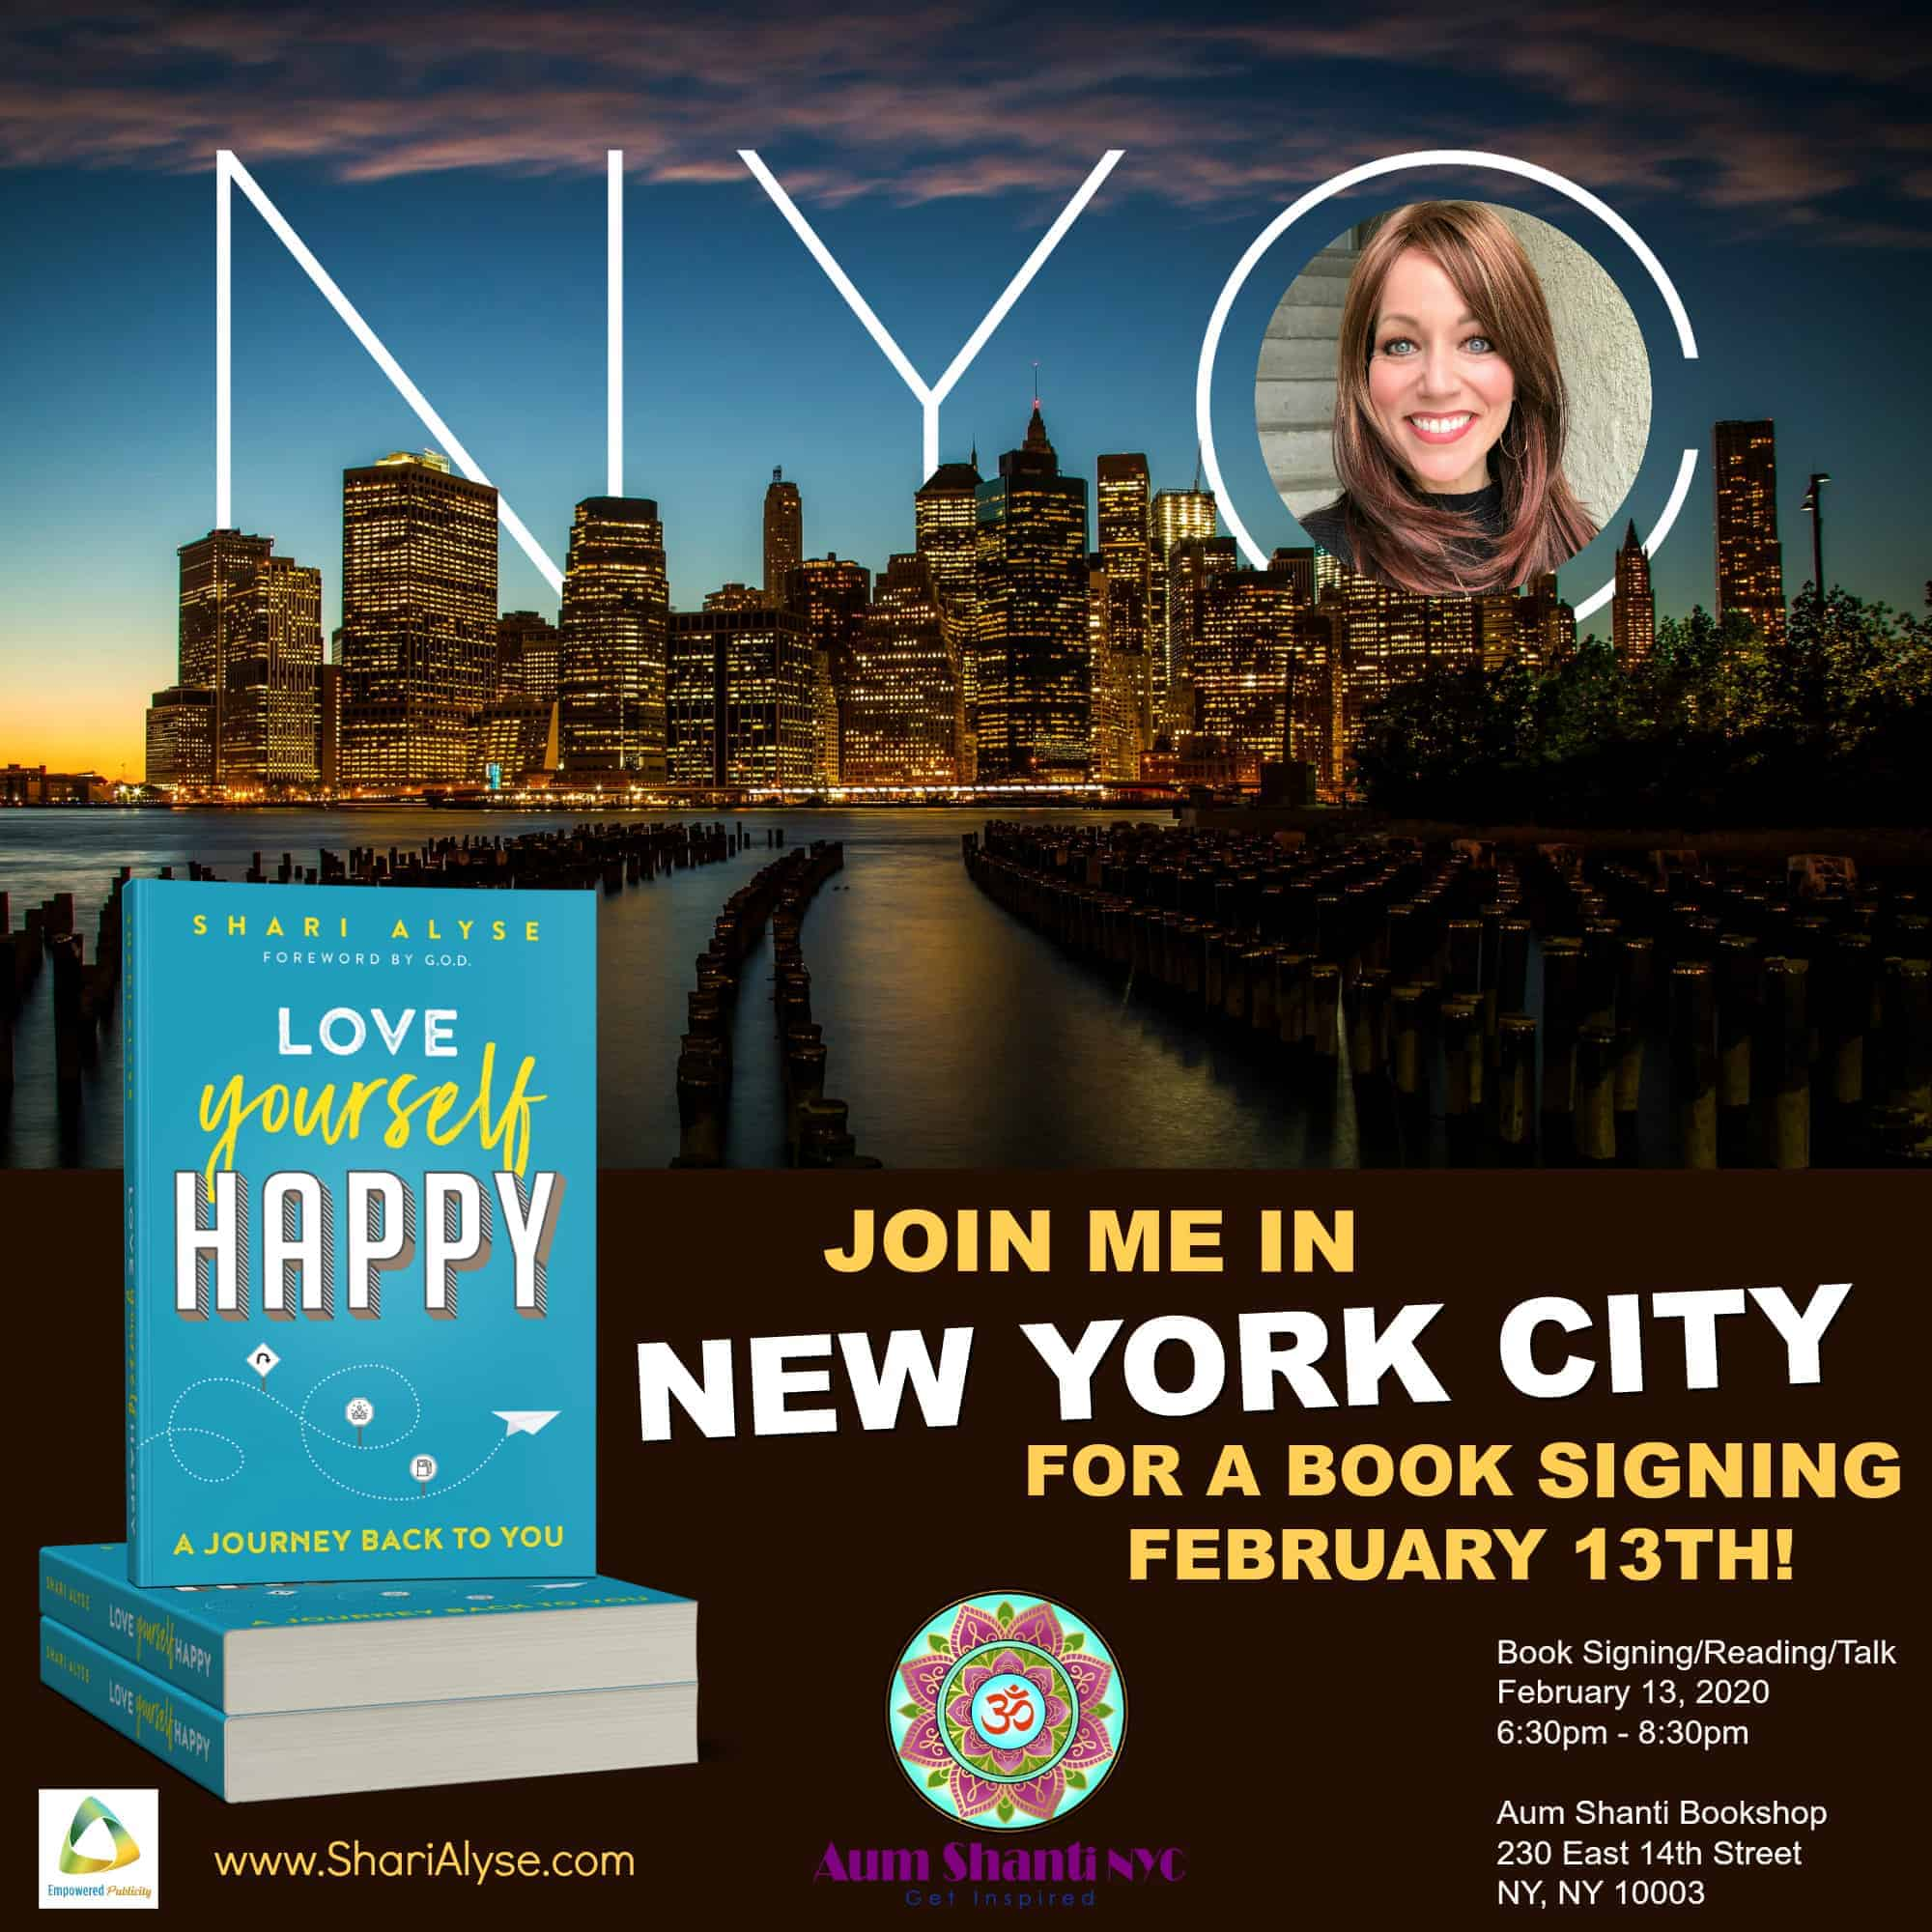 Hey, BIG APPLE! Looks who's coming to town! Join me on #nationalselfloveday February 13th in N